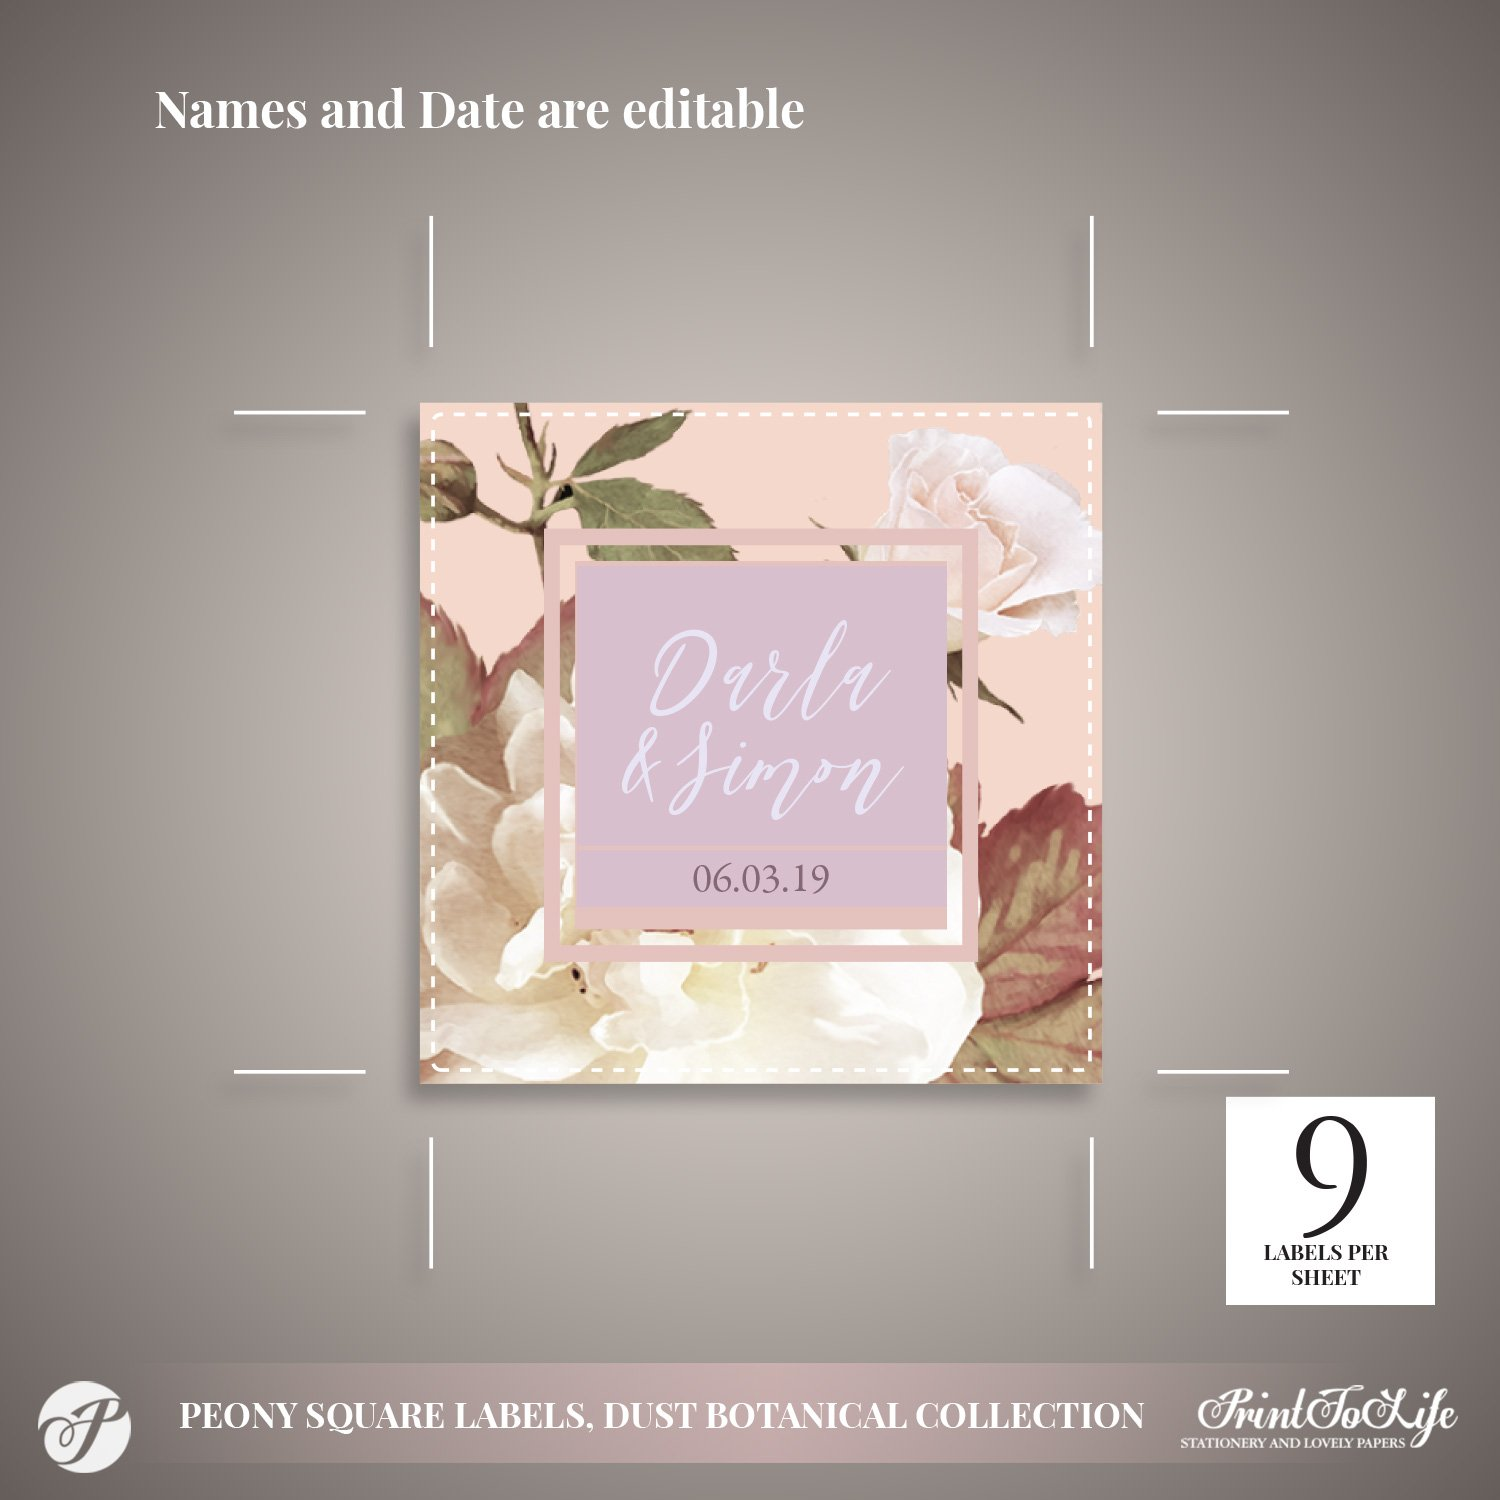 Peony Square Wedding Labels by Printolife